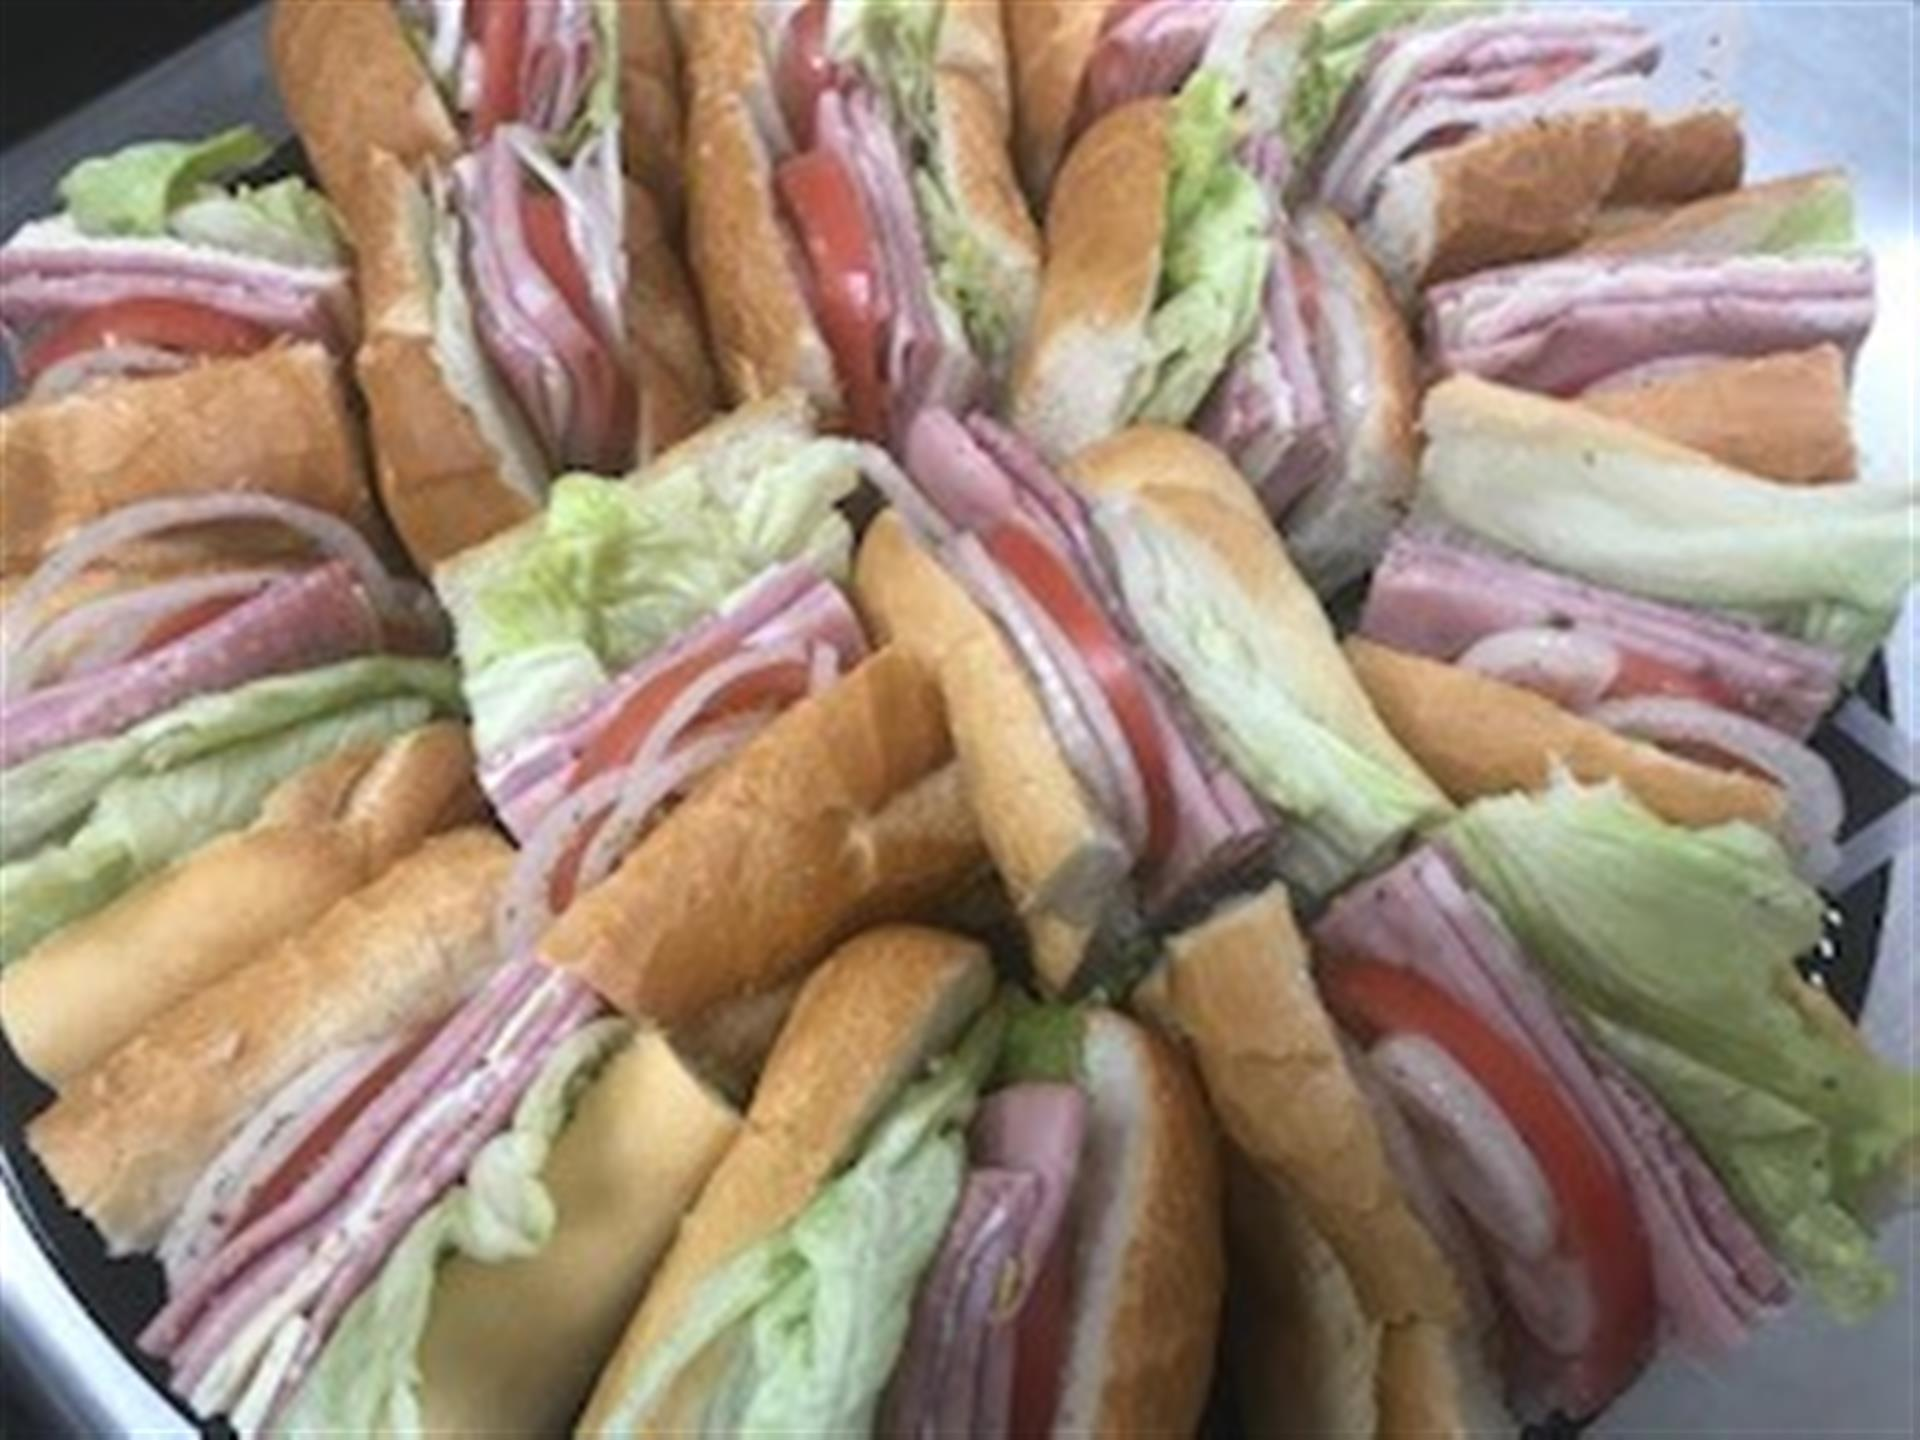 tray of sub sandwiches with ham, cheese, lettuce, tomato and onion.